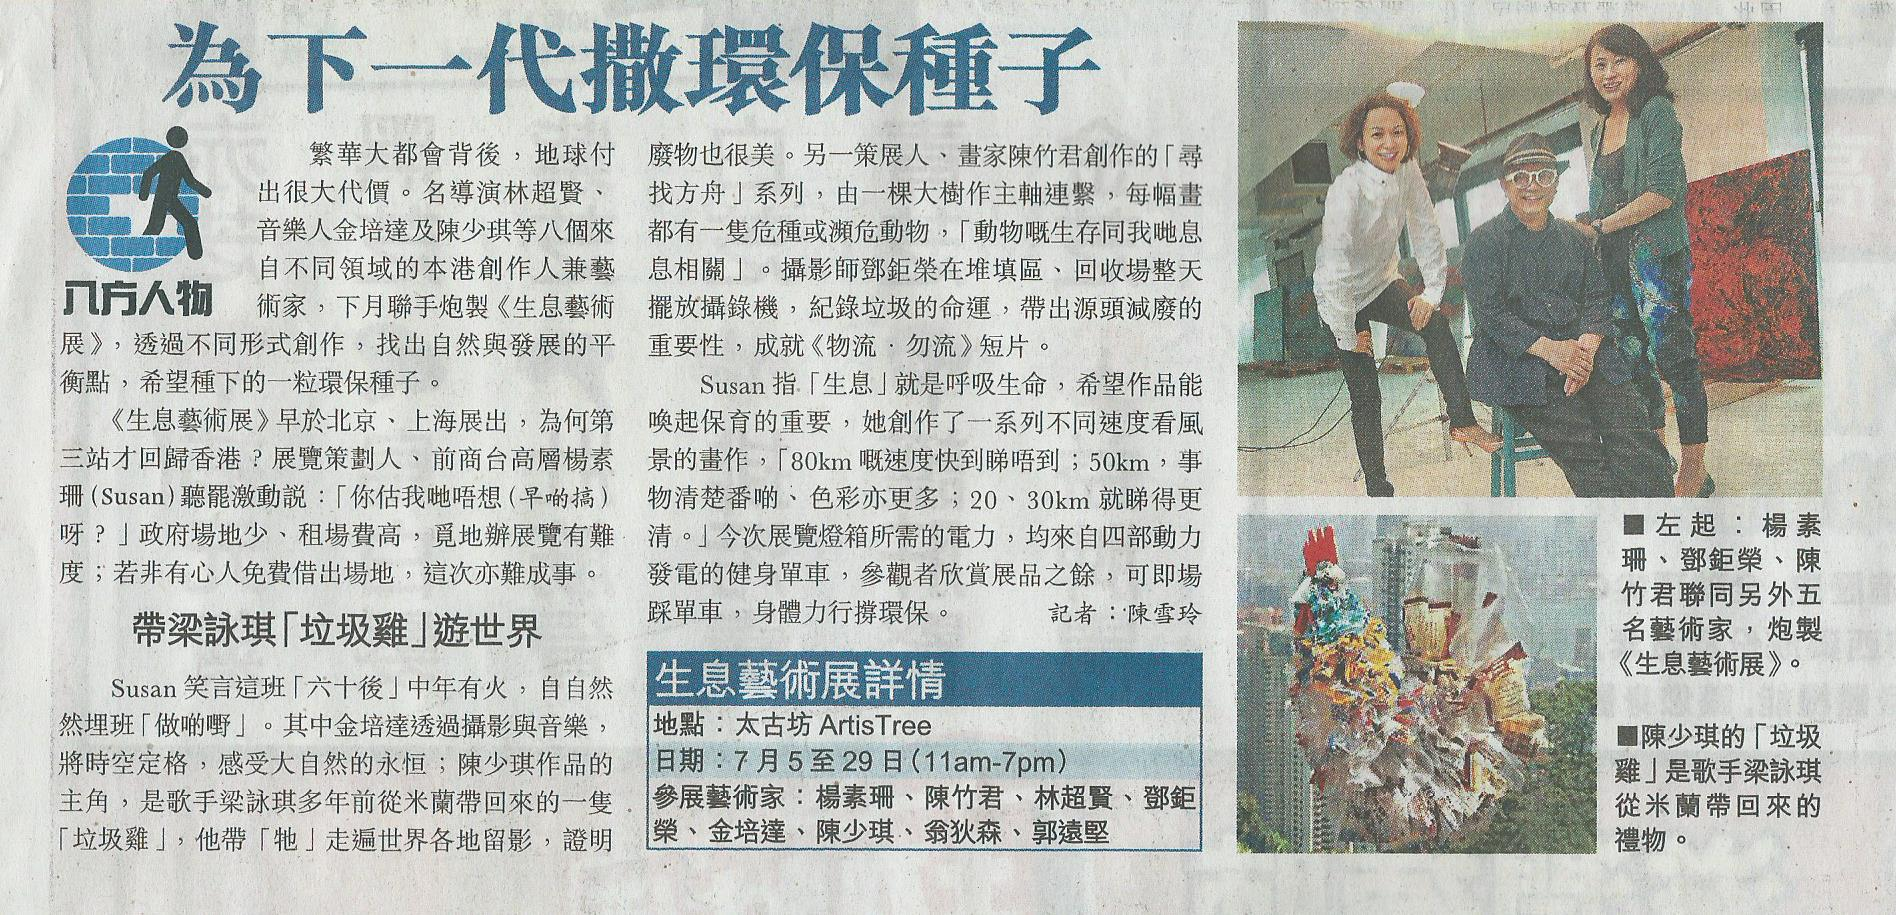 20130628-Apple Daily BL